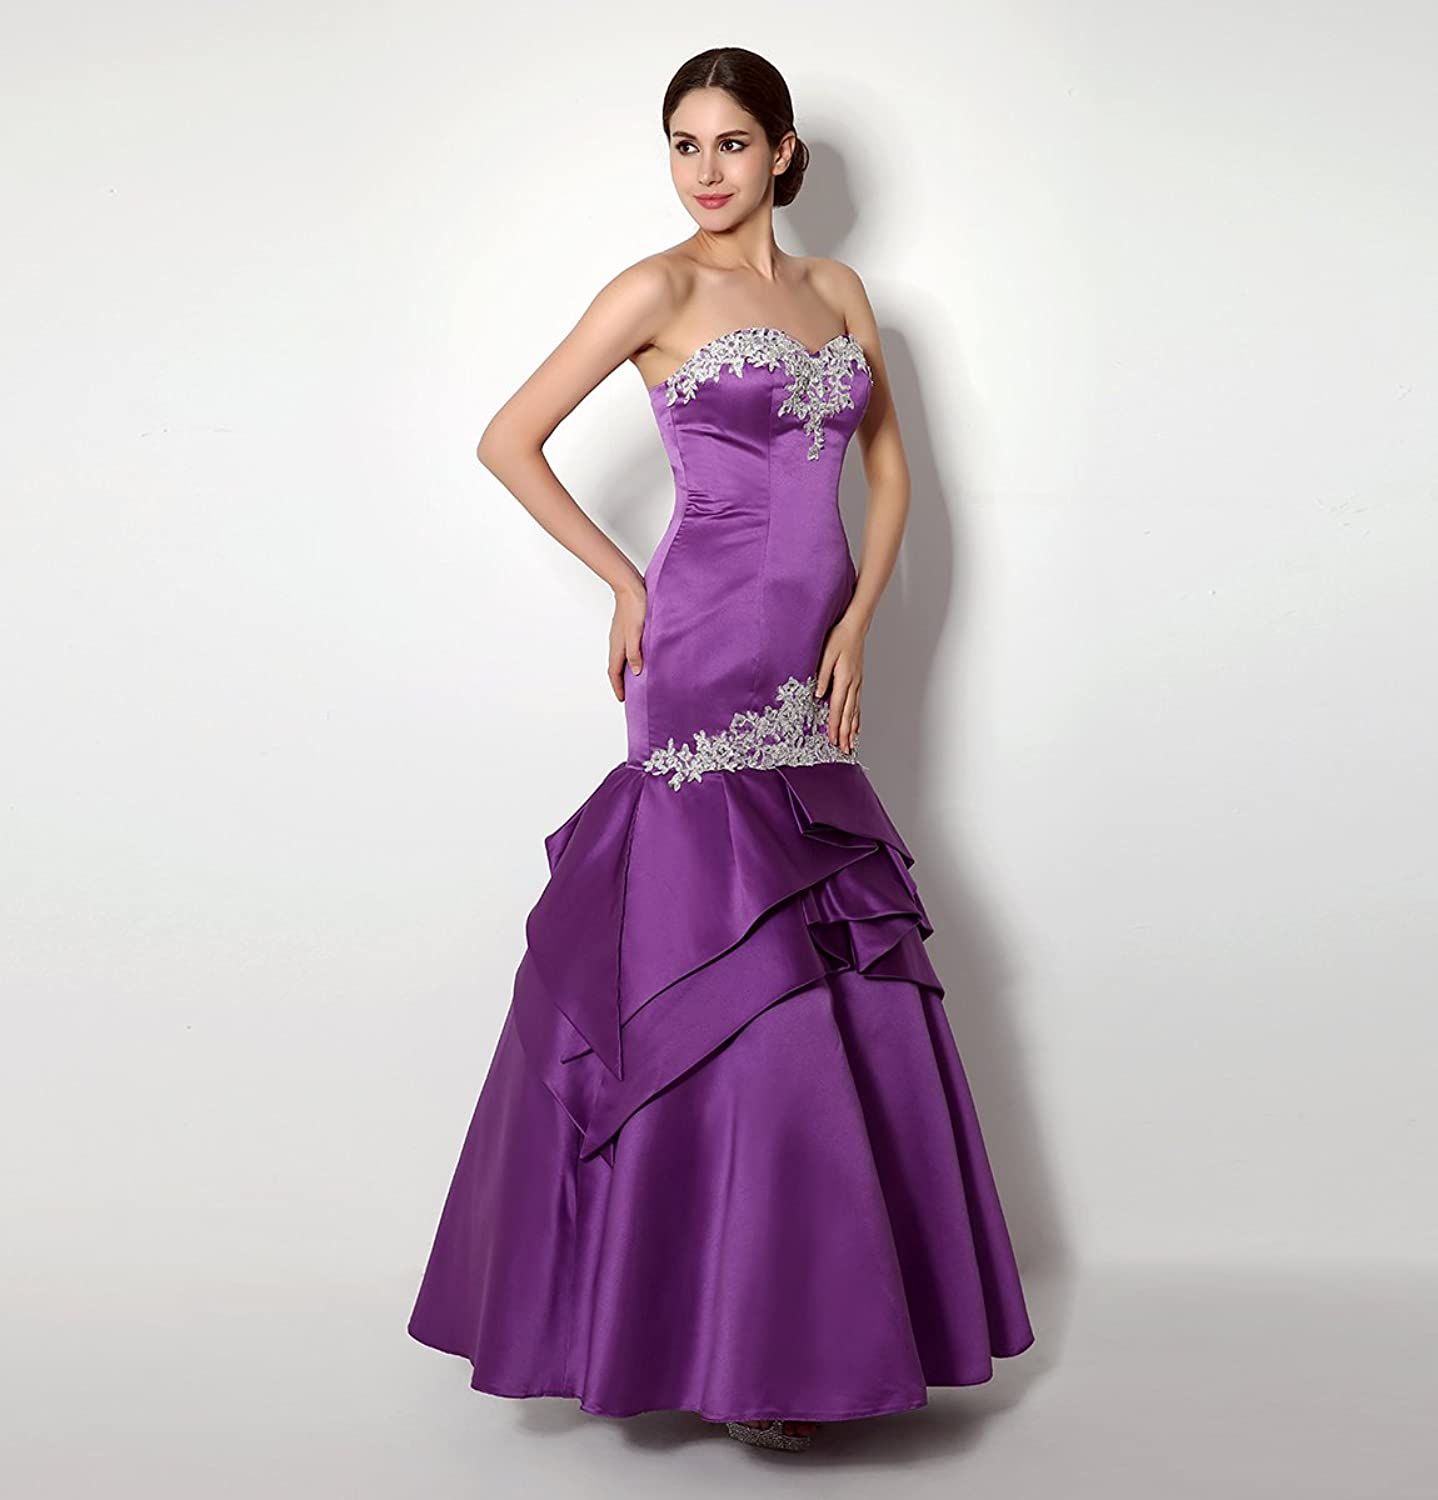 Bridal_Mall Women's Sweetheart Mermaid Satin Prom Gown